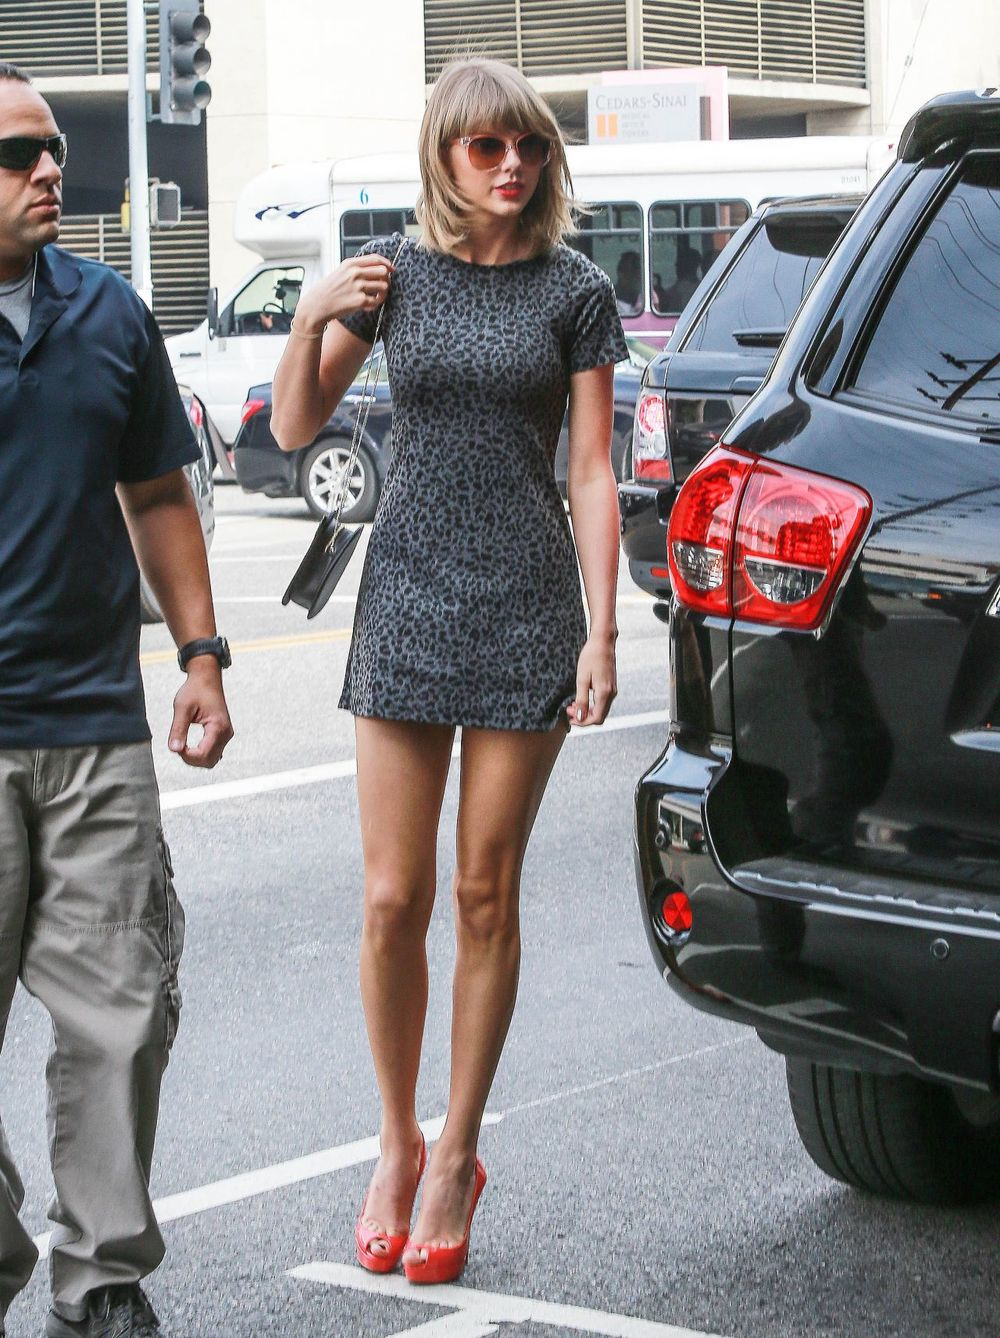 taylor-swift-in-mini-dress-out-for-lunch-in-los-angeles-march-2015_4.jpg